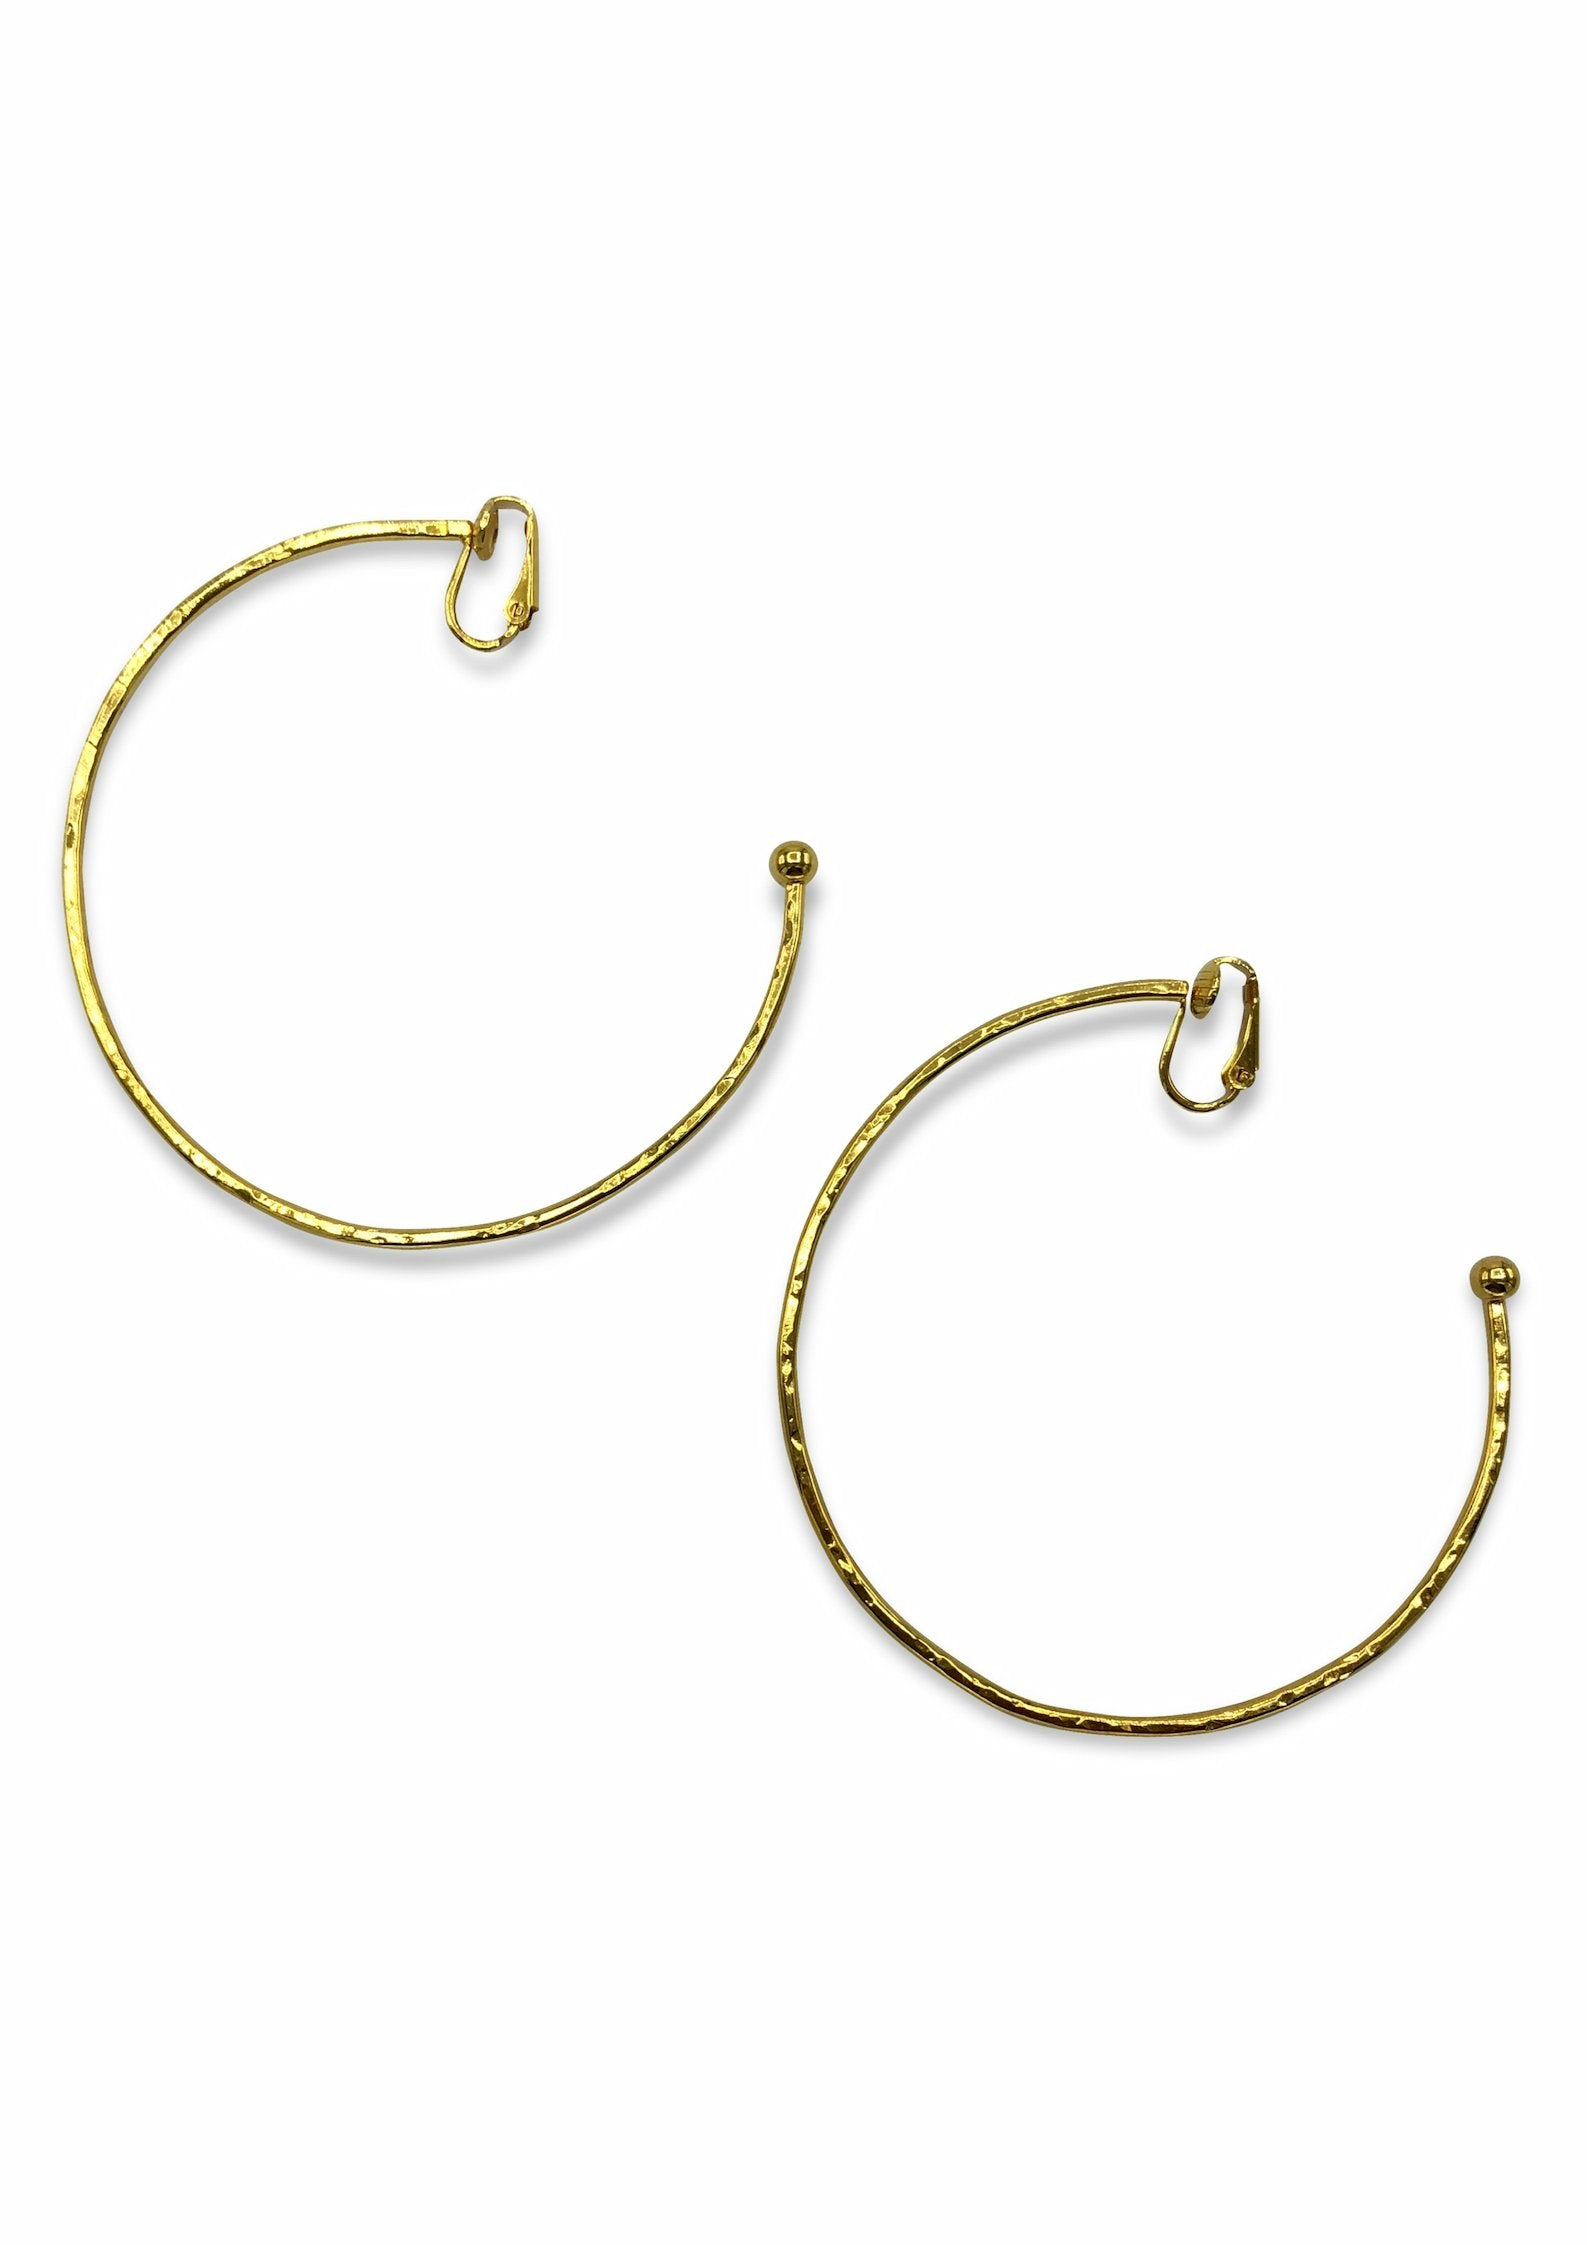 Gold Medium Hooptastic Clip Earrings-Earrings-JAREDJAMIN Jewelry Online-JARED JAMIN